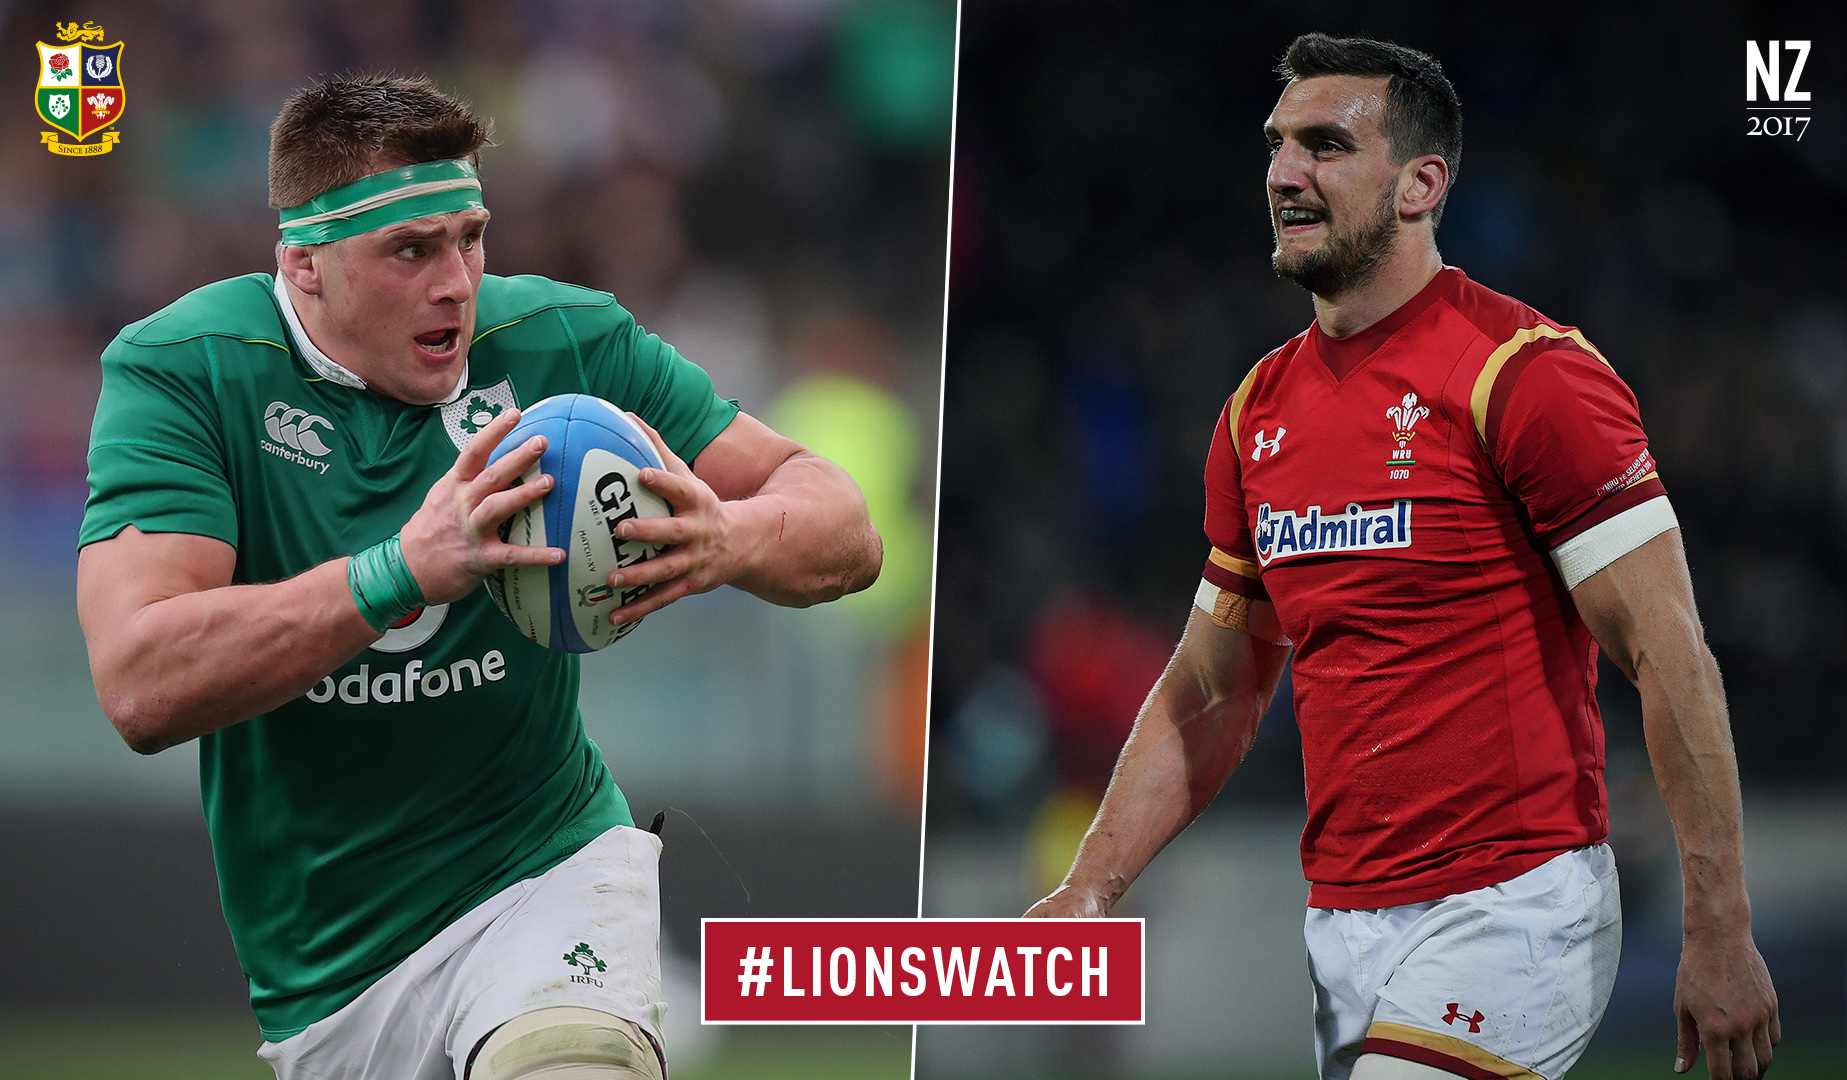 LionsWatch: Wales v Ireland preview